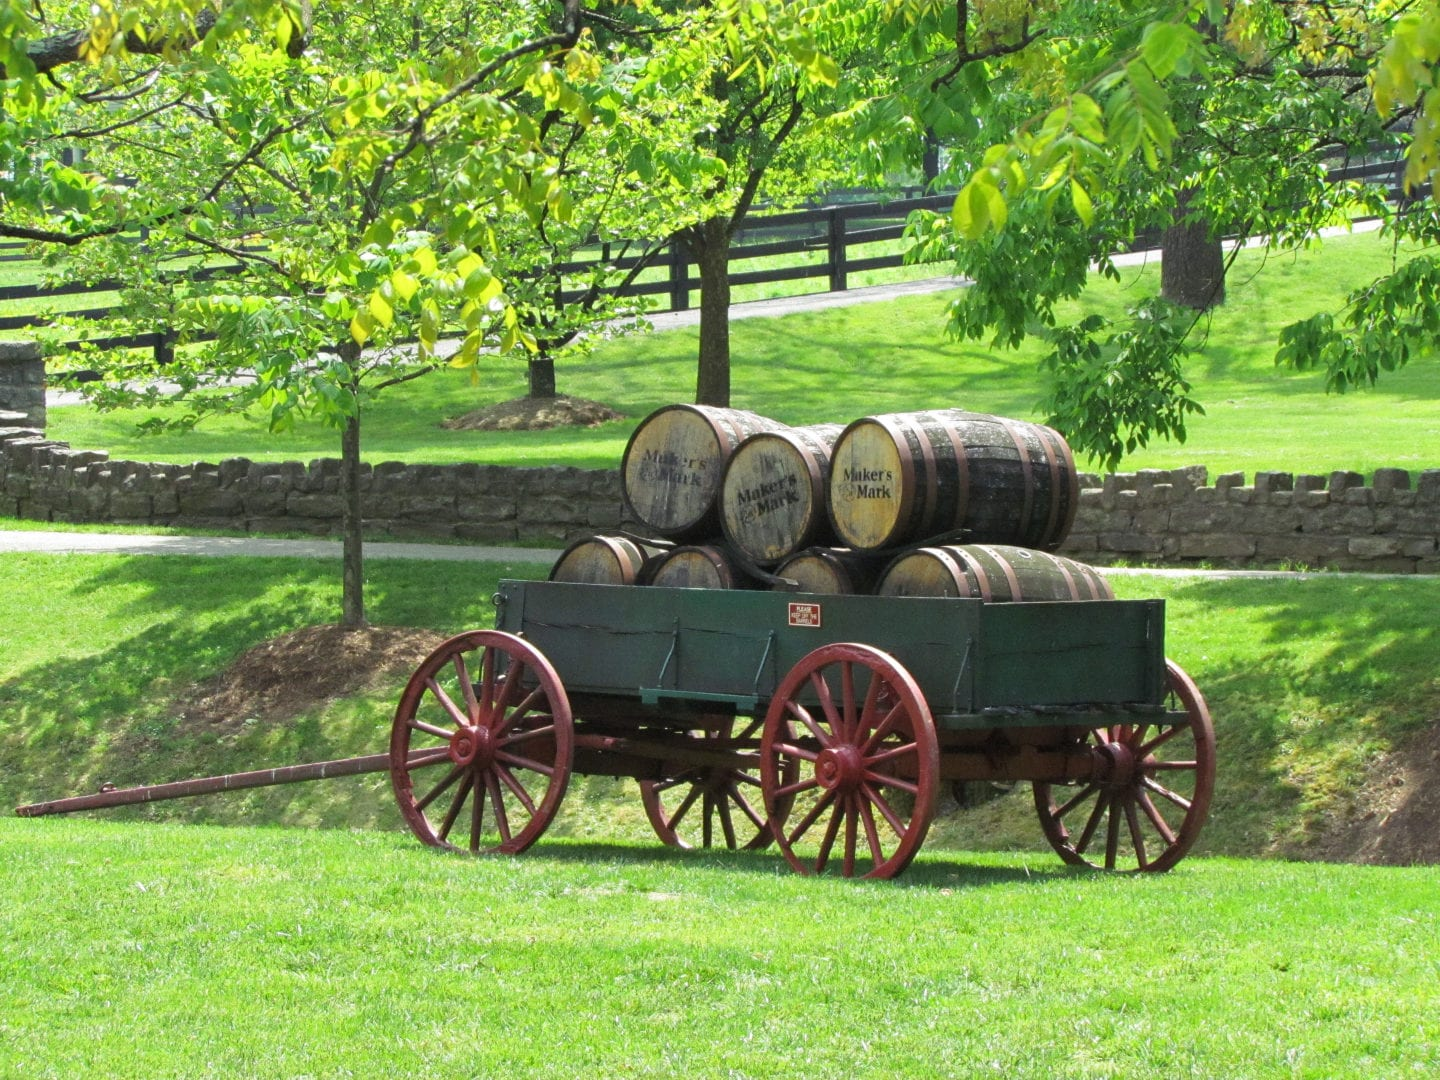 A cart full of barrels from the distillery